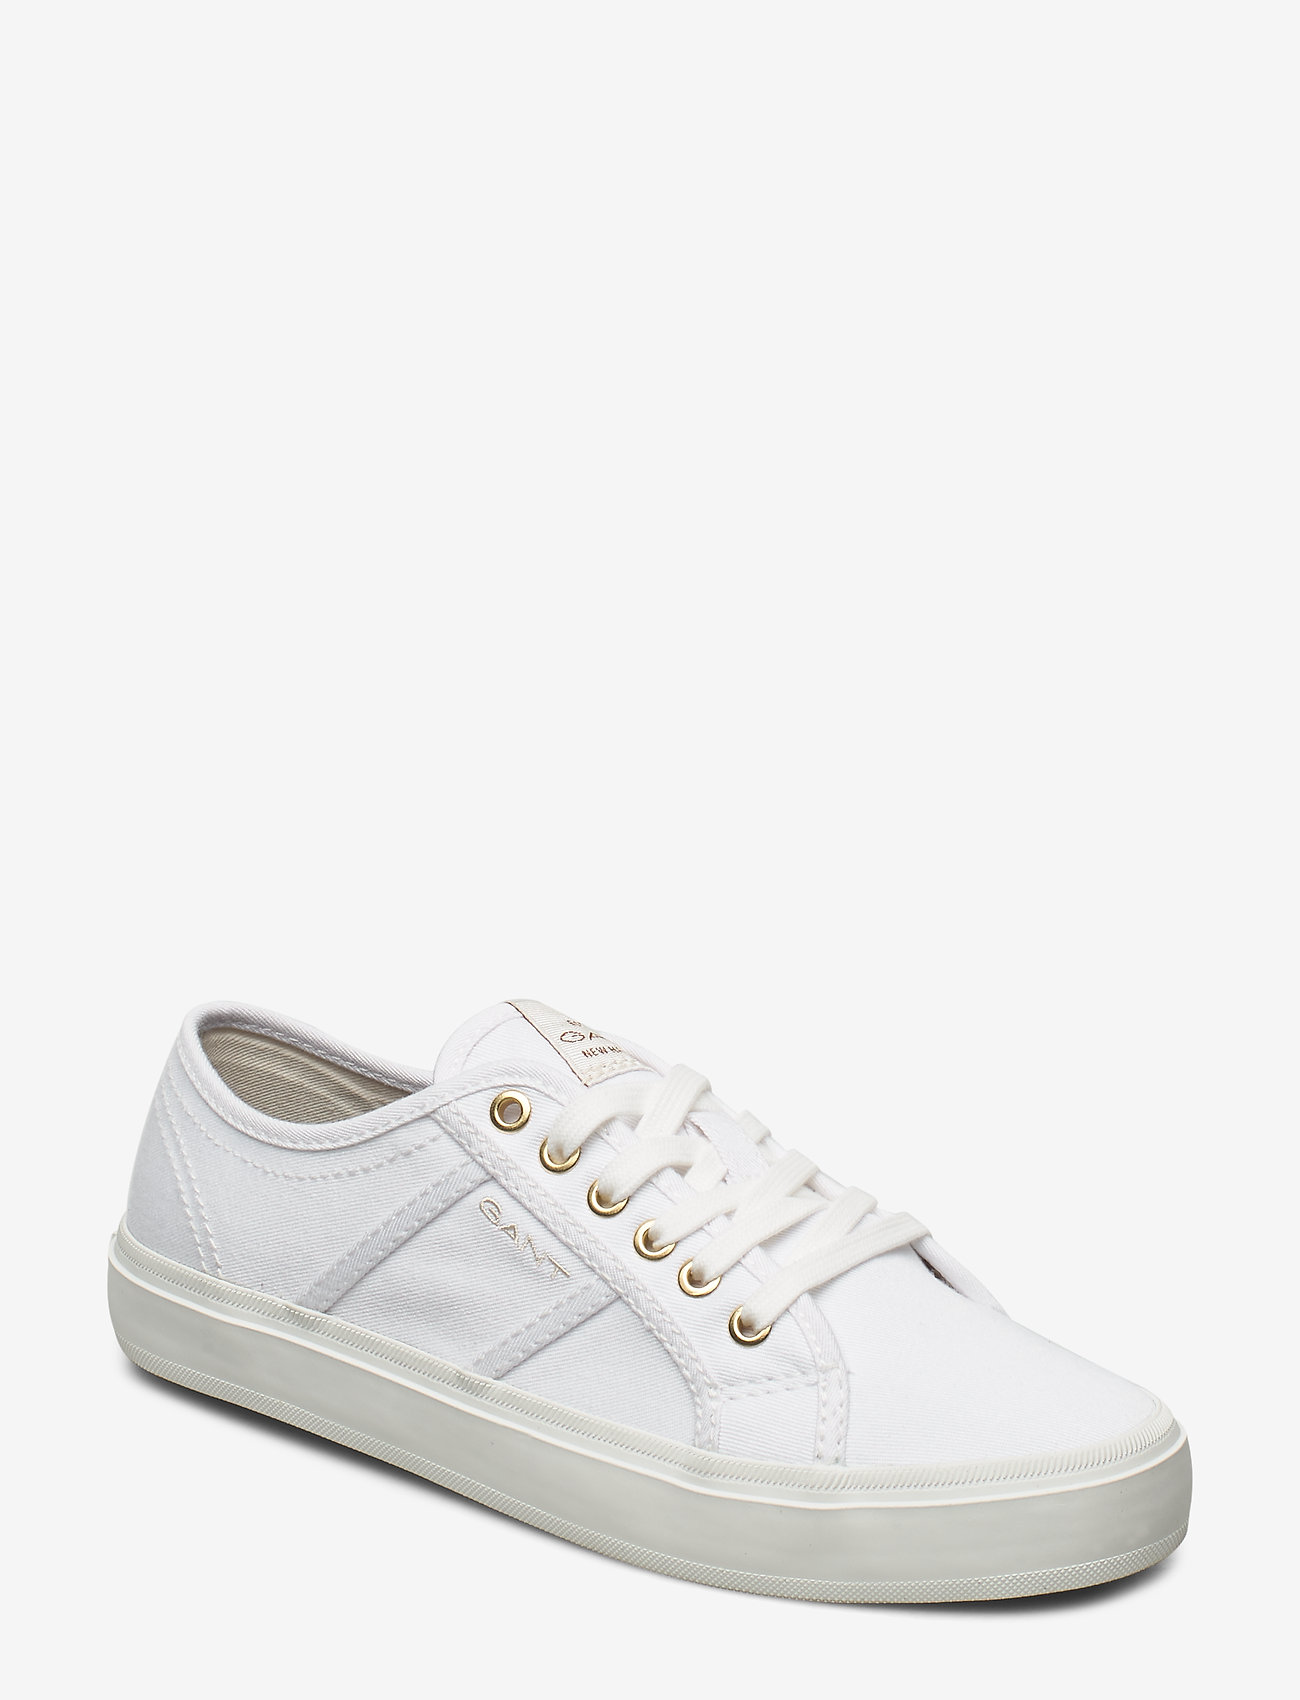 GANT - Pinestreet Low laceshoes - low top sneakers - white